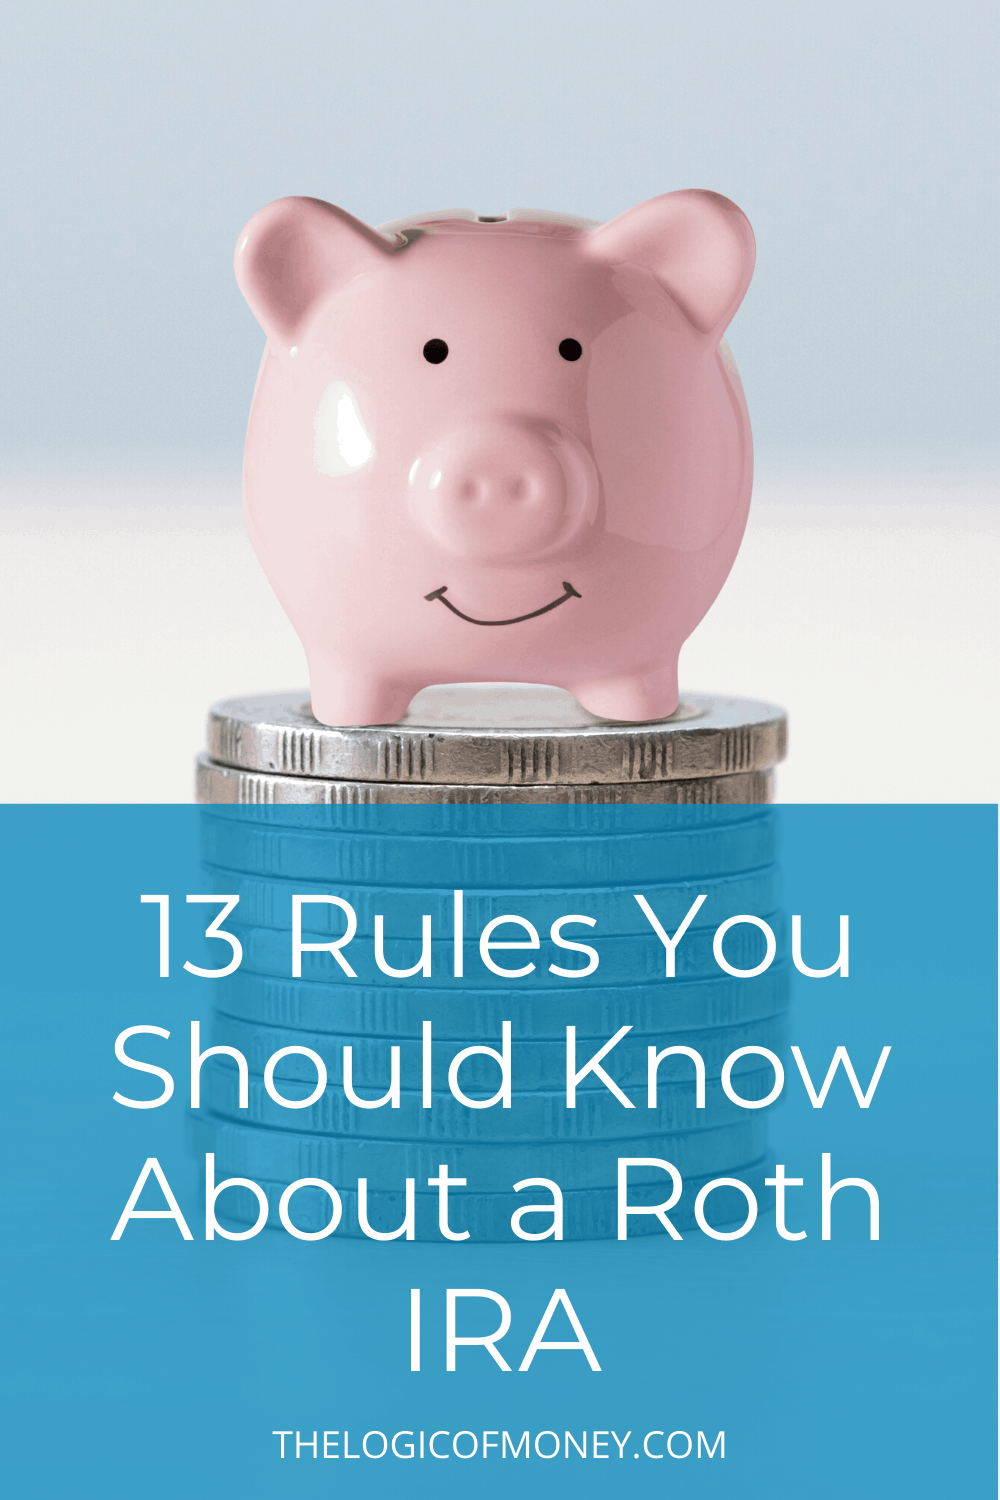 13 Rules You Should Know About a Roth IRA